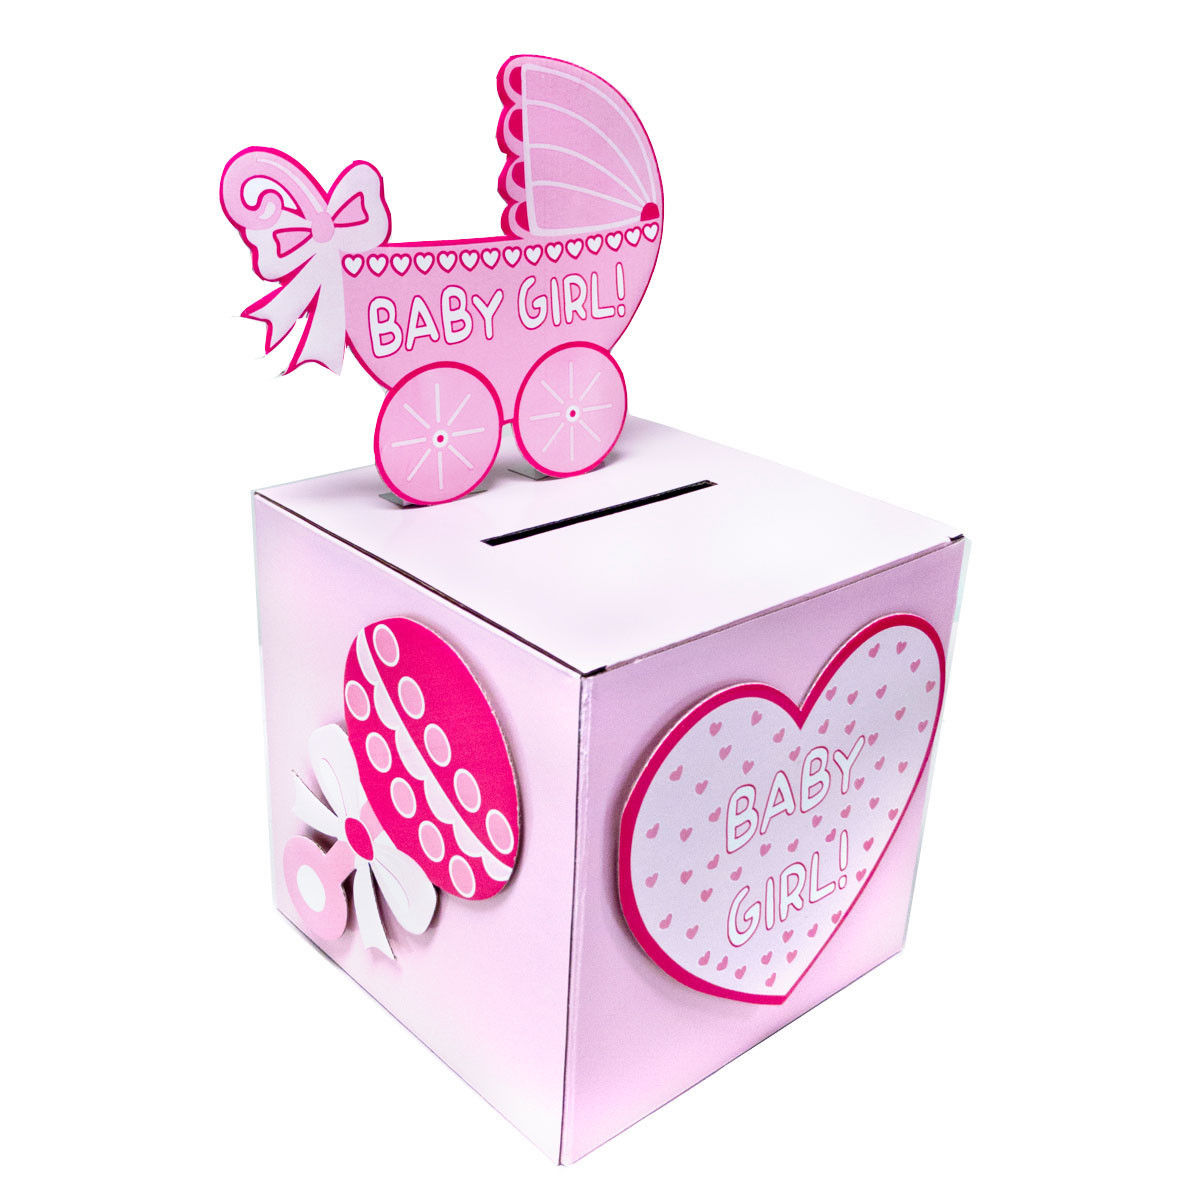 Baby Shower Wishing Well Card Box Decoration Cute Pretty Keepsake Carriage  Rattle